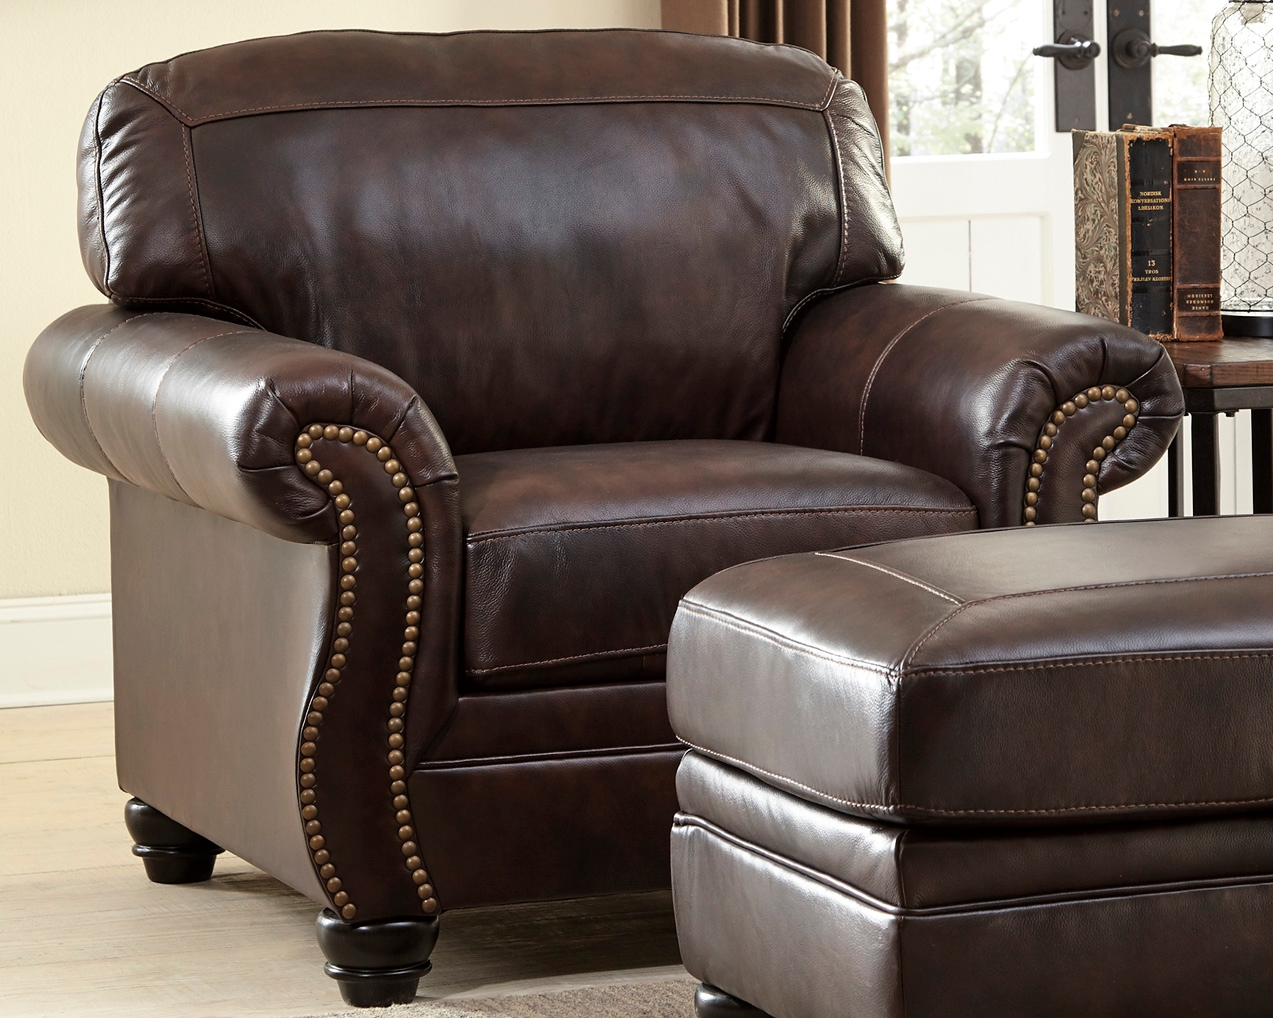 Bristan Chair, Walnut Leather Affordable leather chair